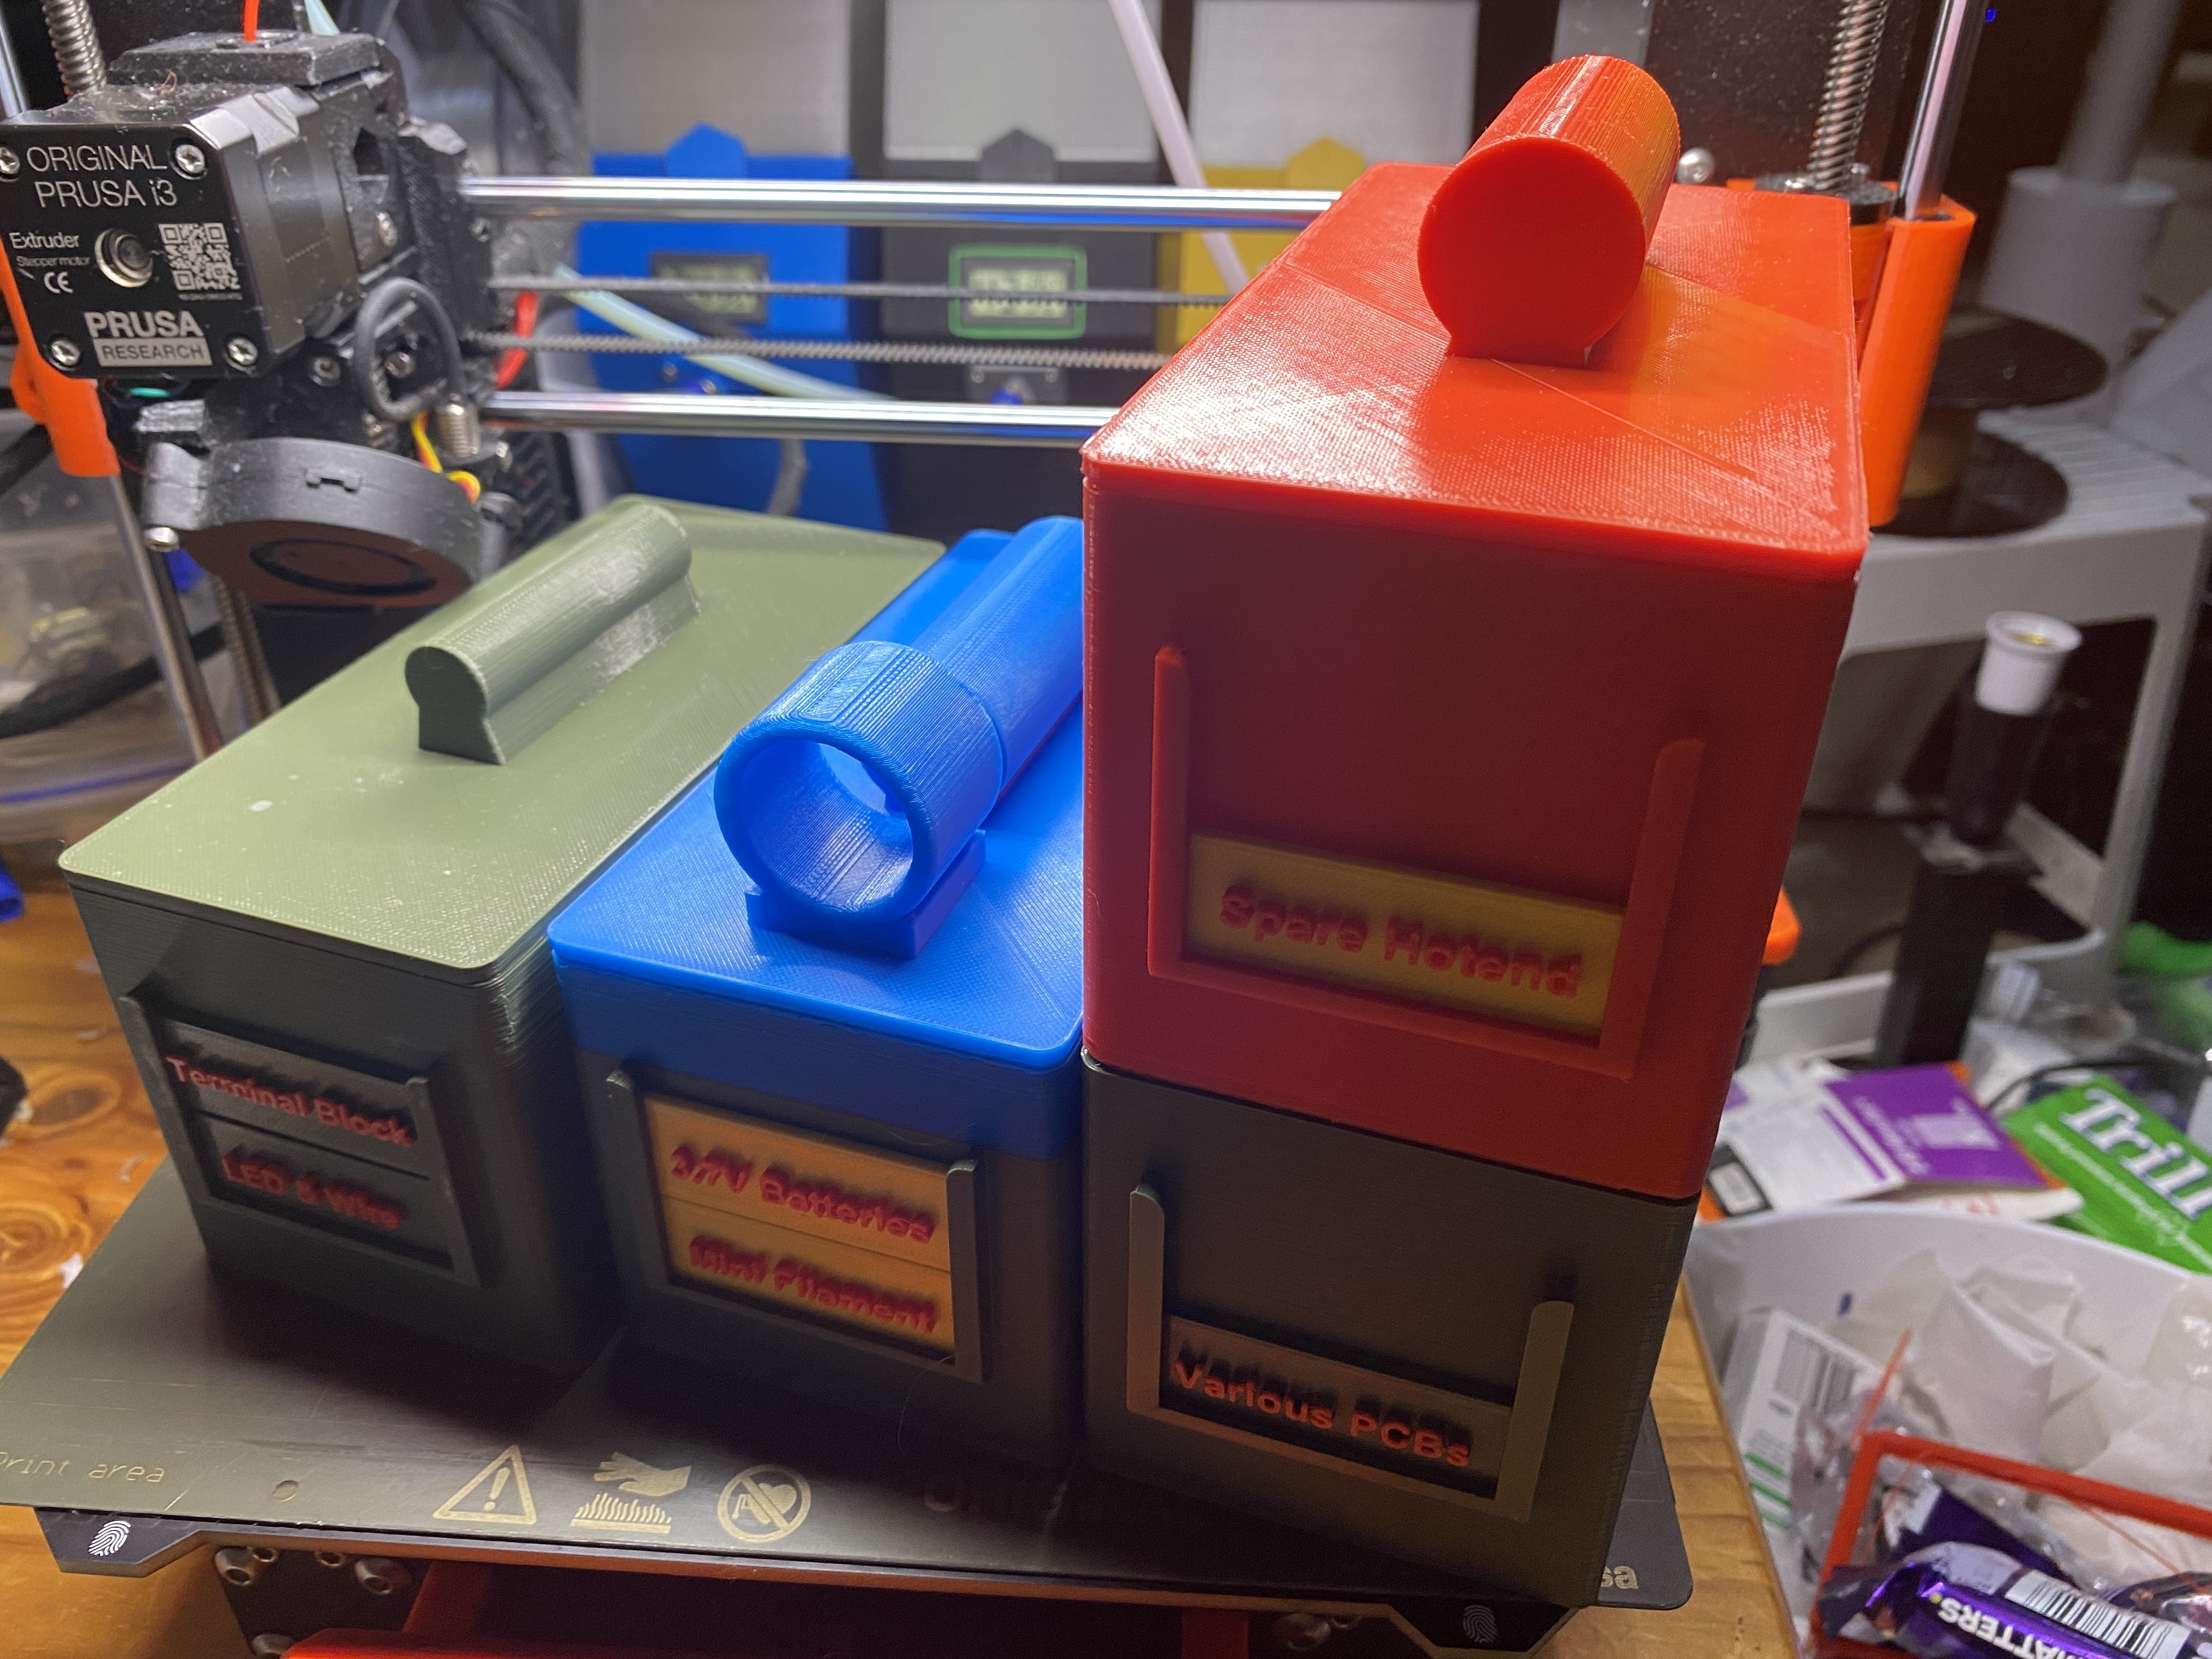 IMG_0428.JPG Download free STL file Tight-Fitting Lids on Containers • 3D printer model, christinewhybrow